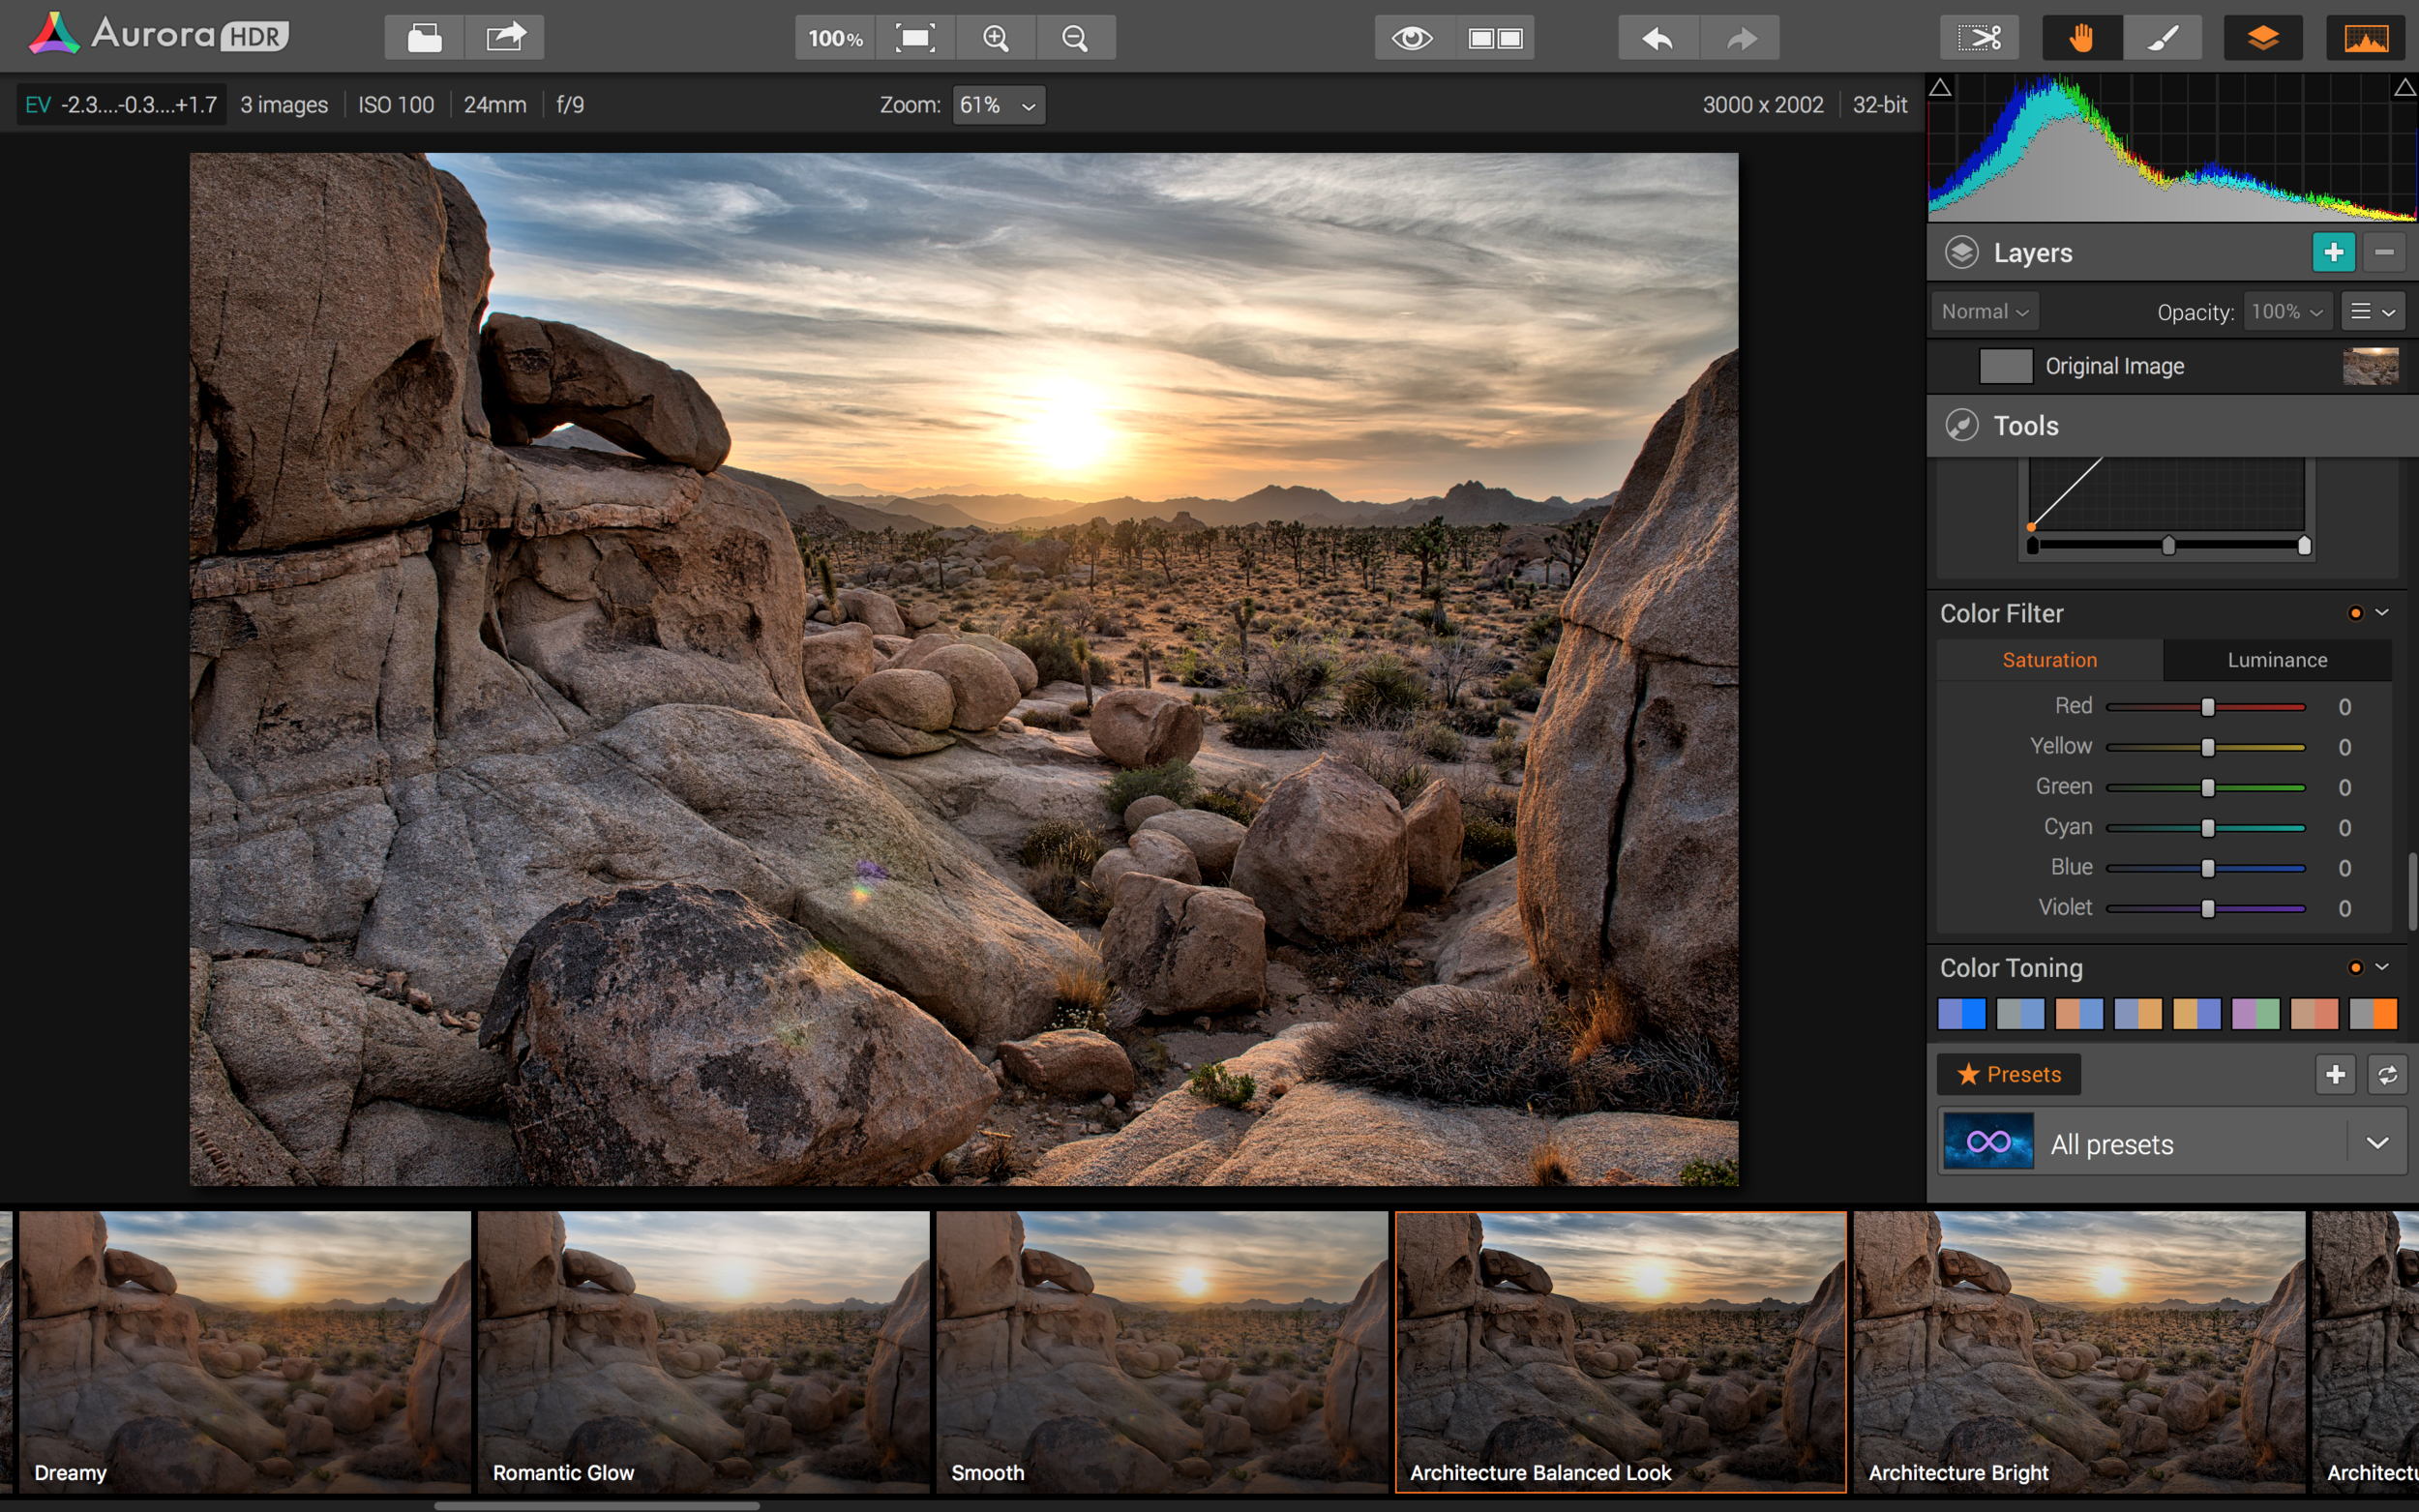 Great HDR software!